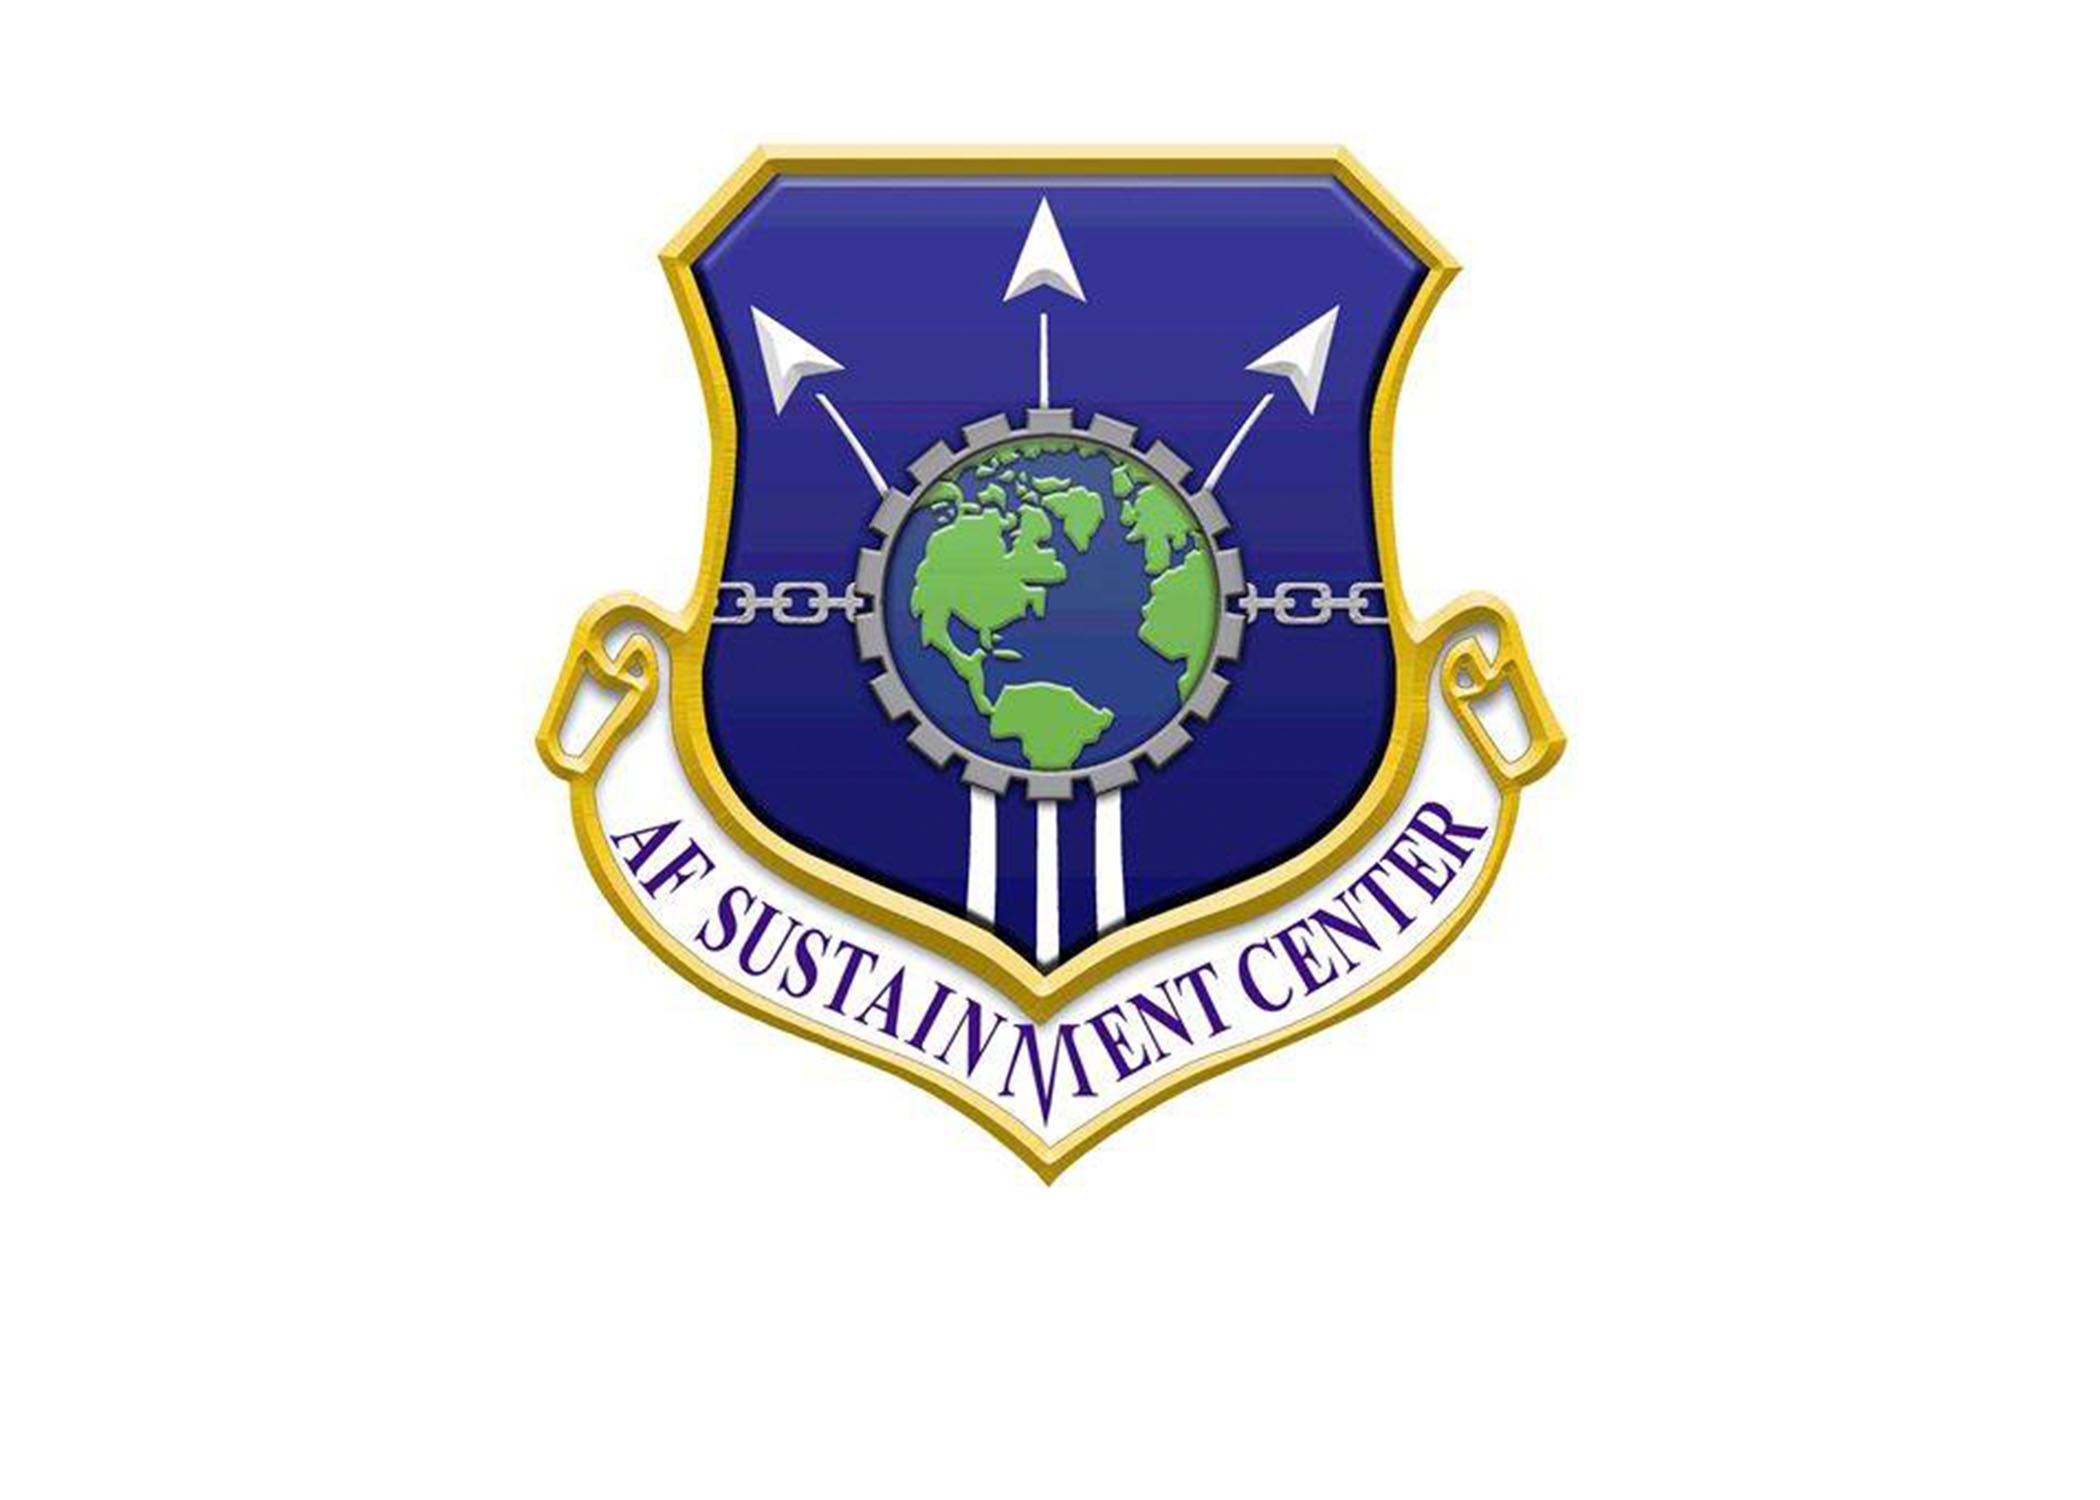 Air Force Sustainment Center